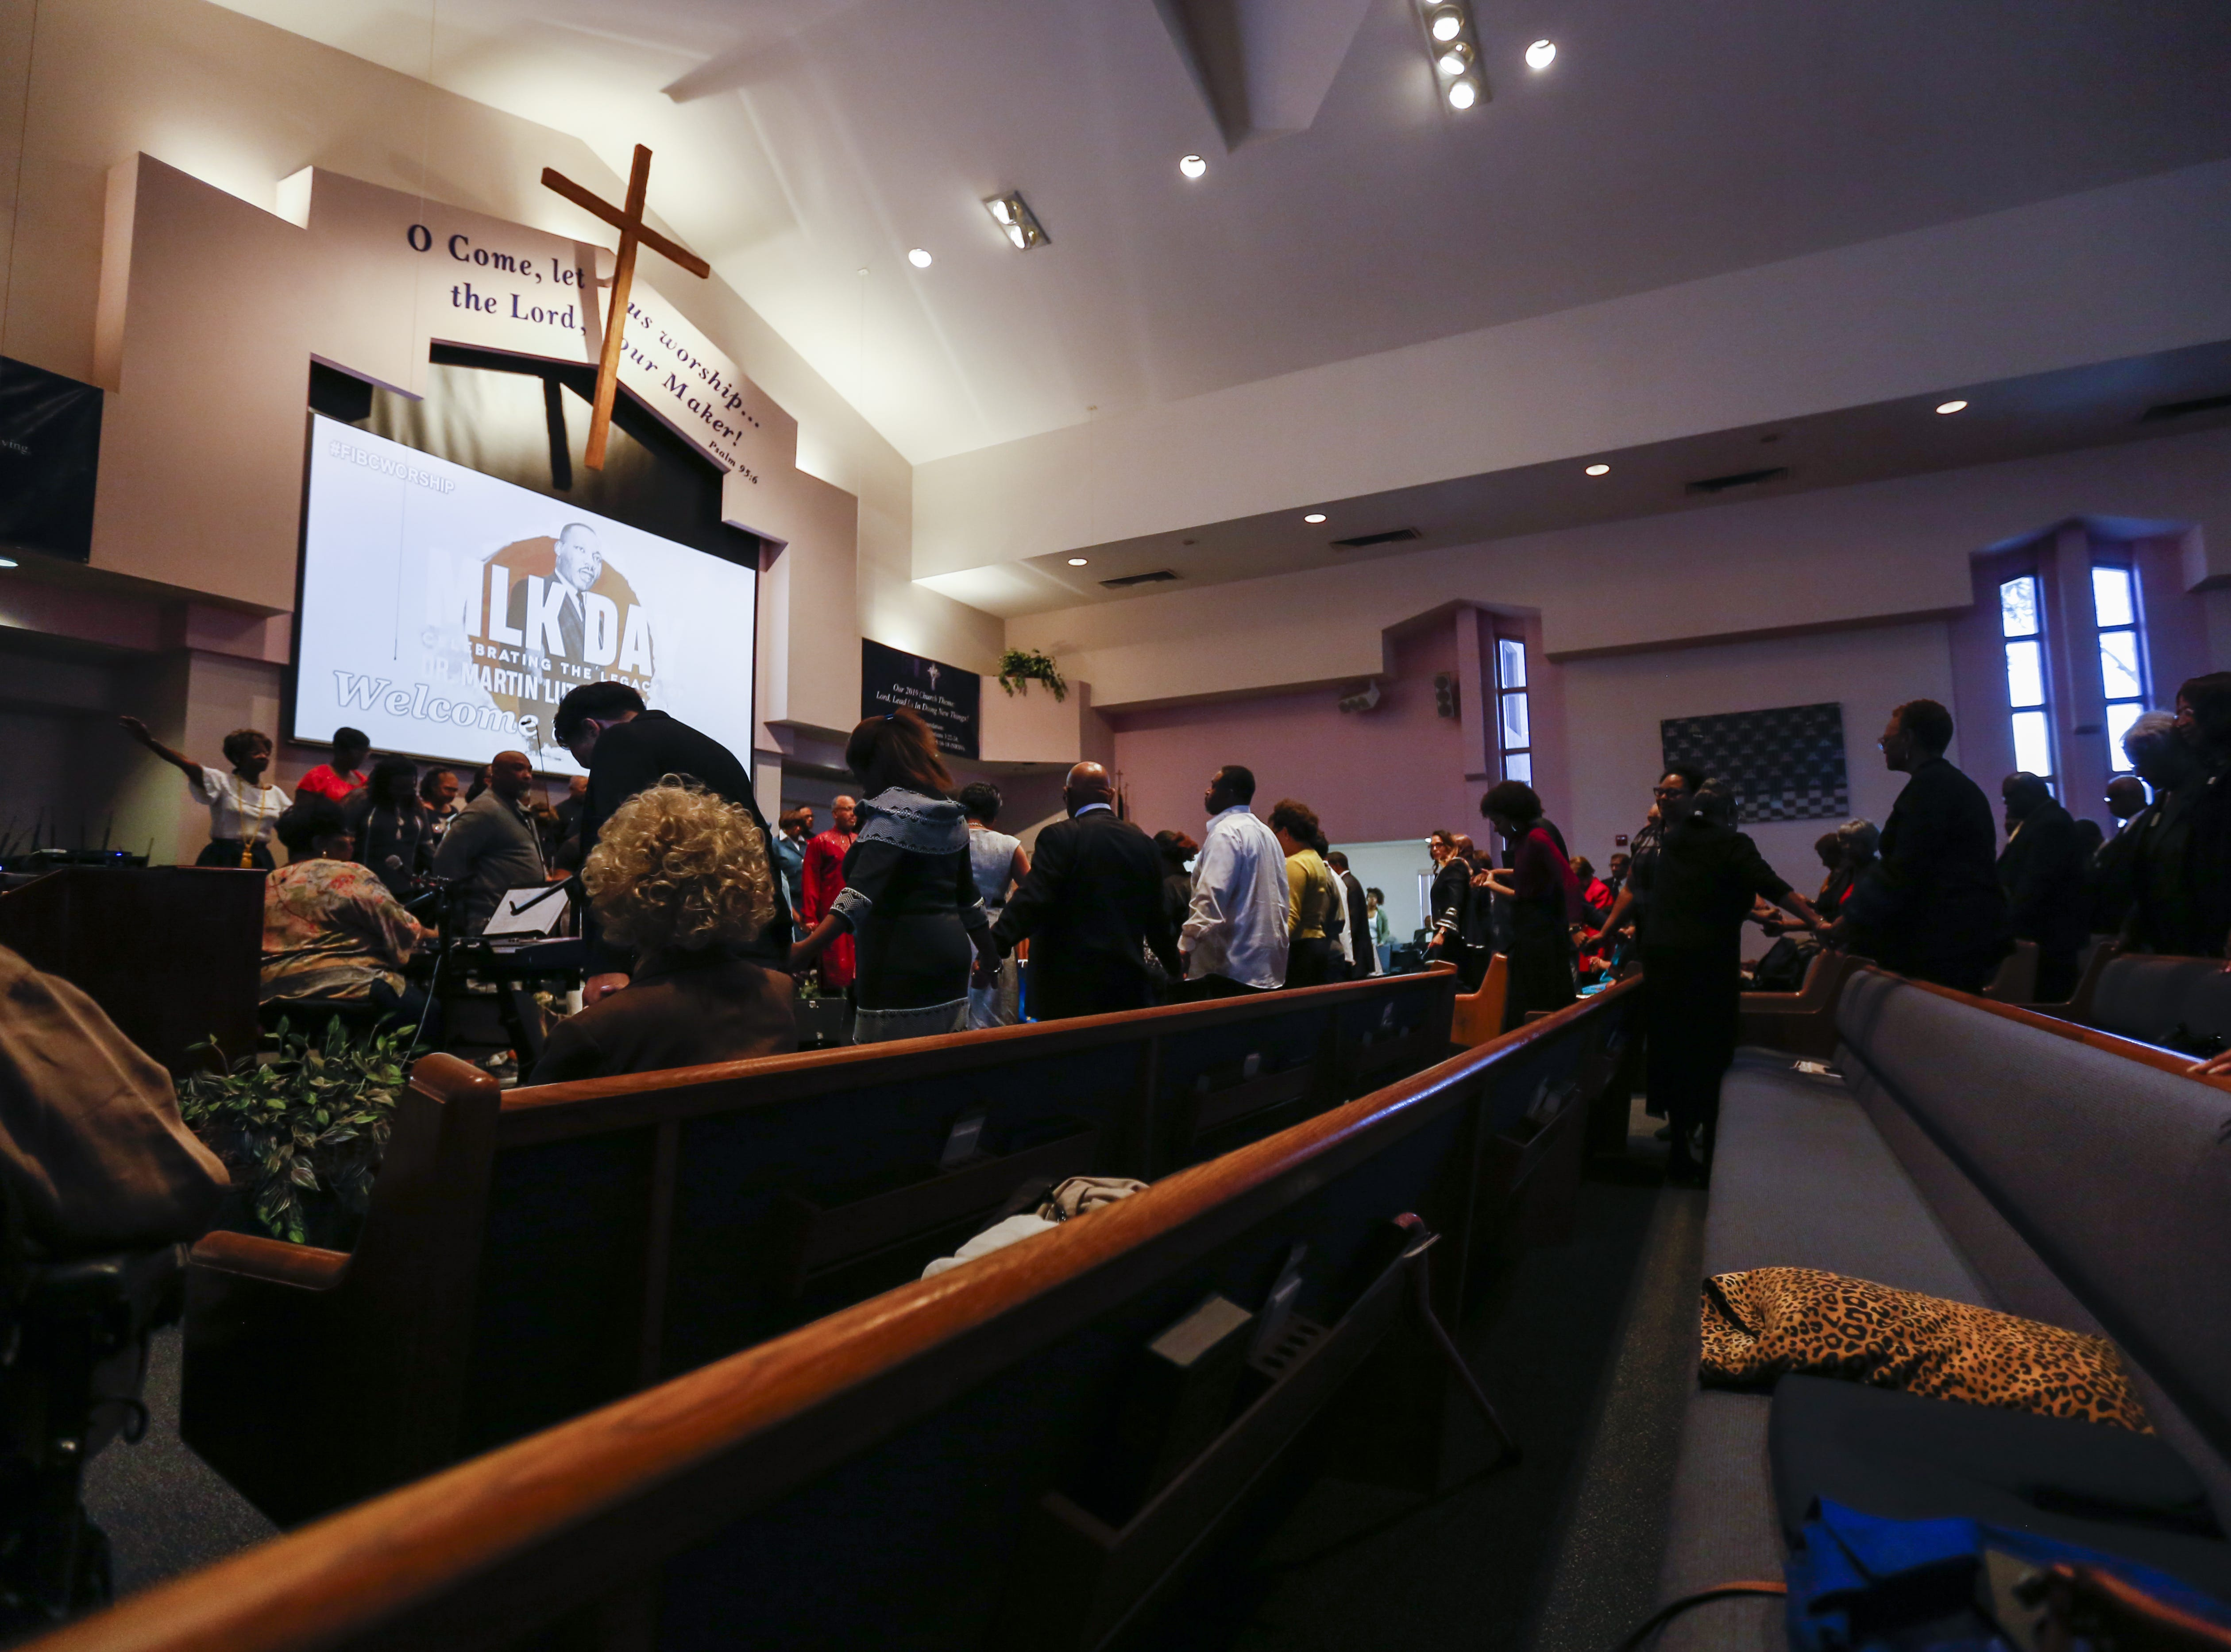 Congregation members bow their heads in prayer at First Institutional Baptist Church during services on Sunday, Jan. 20, 2019.